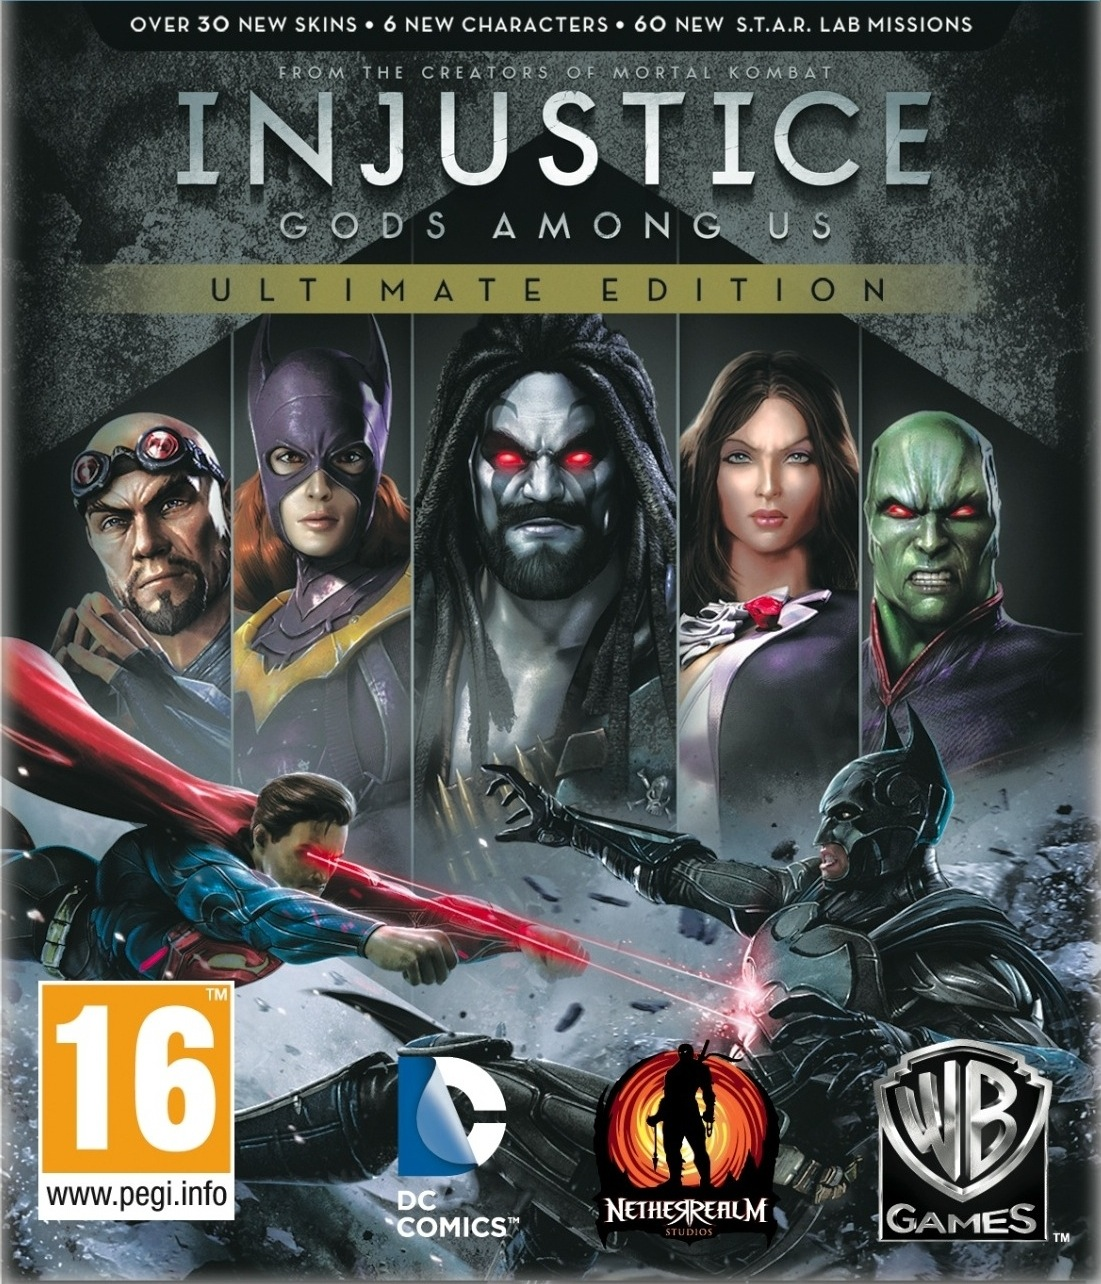 Injustice - Gods Among Us PC Review Boxart